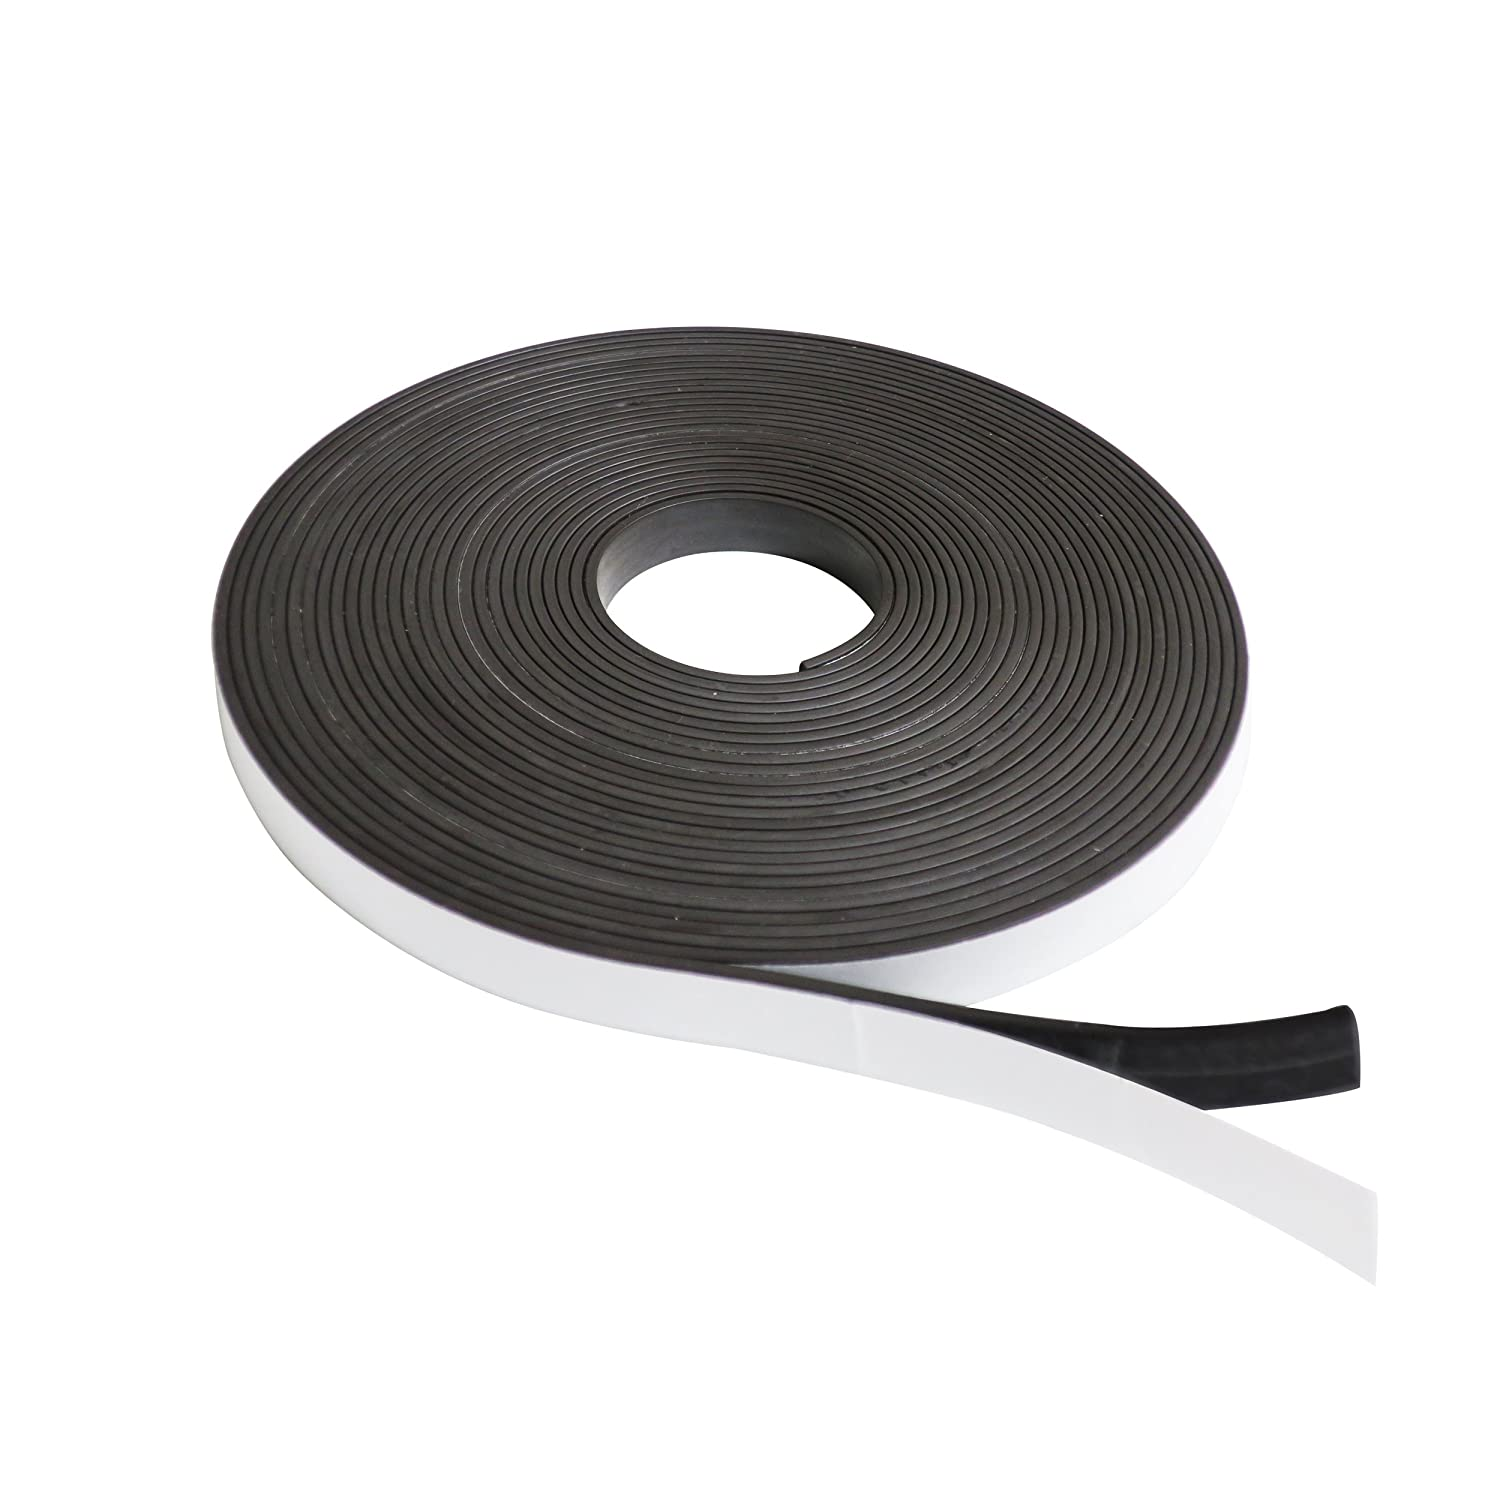 Dabit Quality Magnetic Tape | Magnetic Strip on 1 Side, Self-Adhesive on the Other | Ideal for Crafting Fridge Magnets, Flexible magnetic roll for DIY Projects & Dry Erase Boards